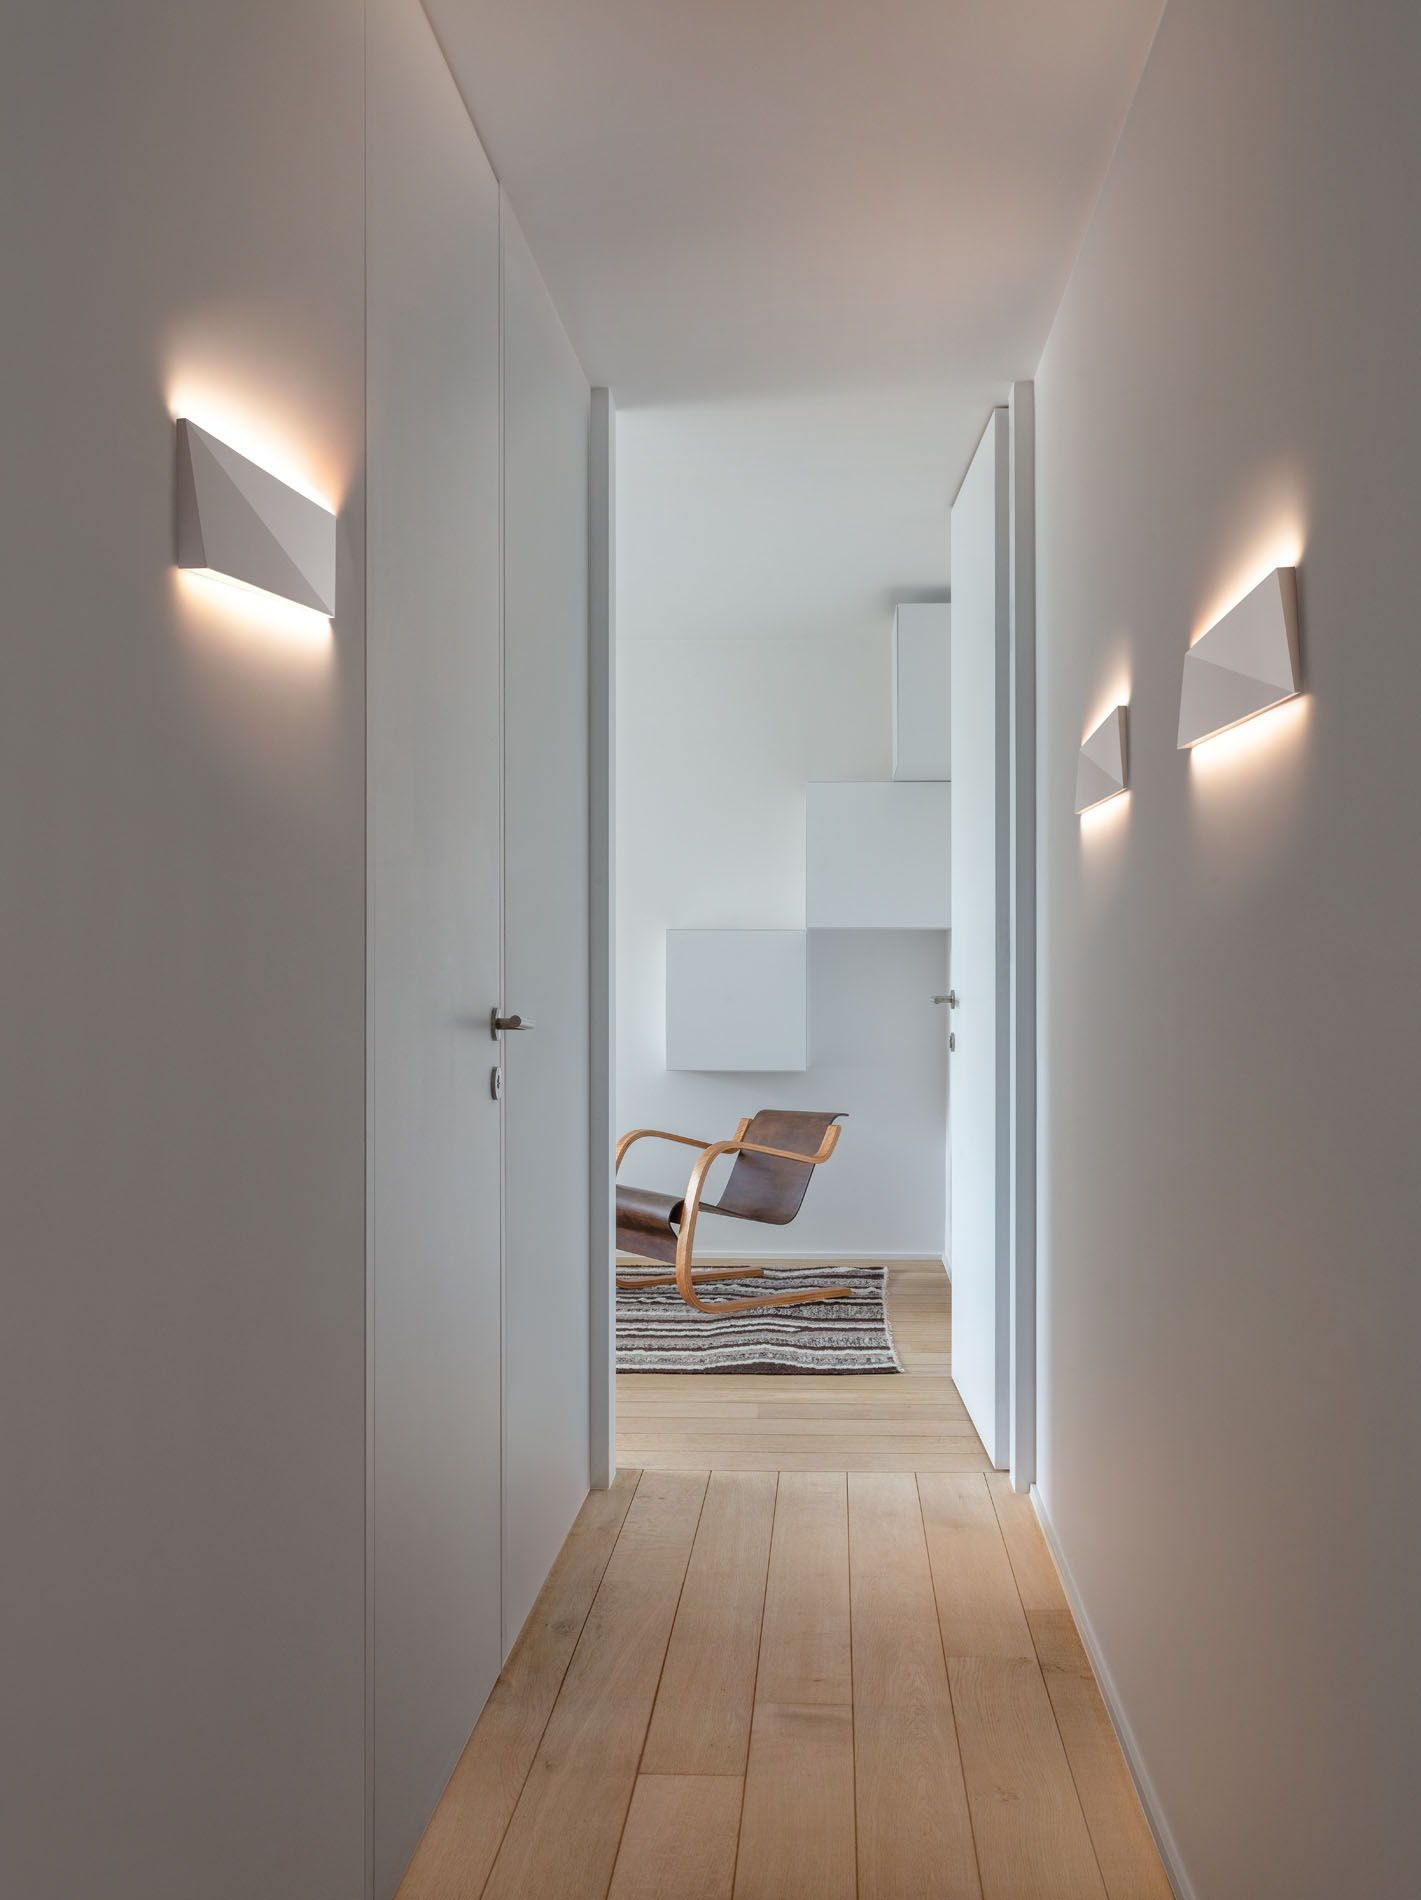 New Dent L Looking For Wall Lighting Ideas Dent L Adds To The